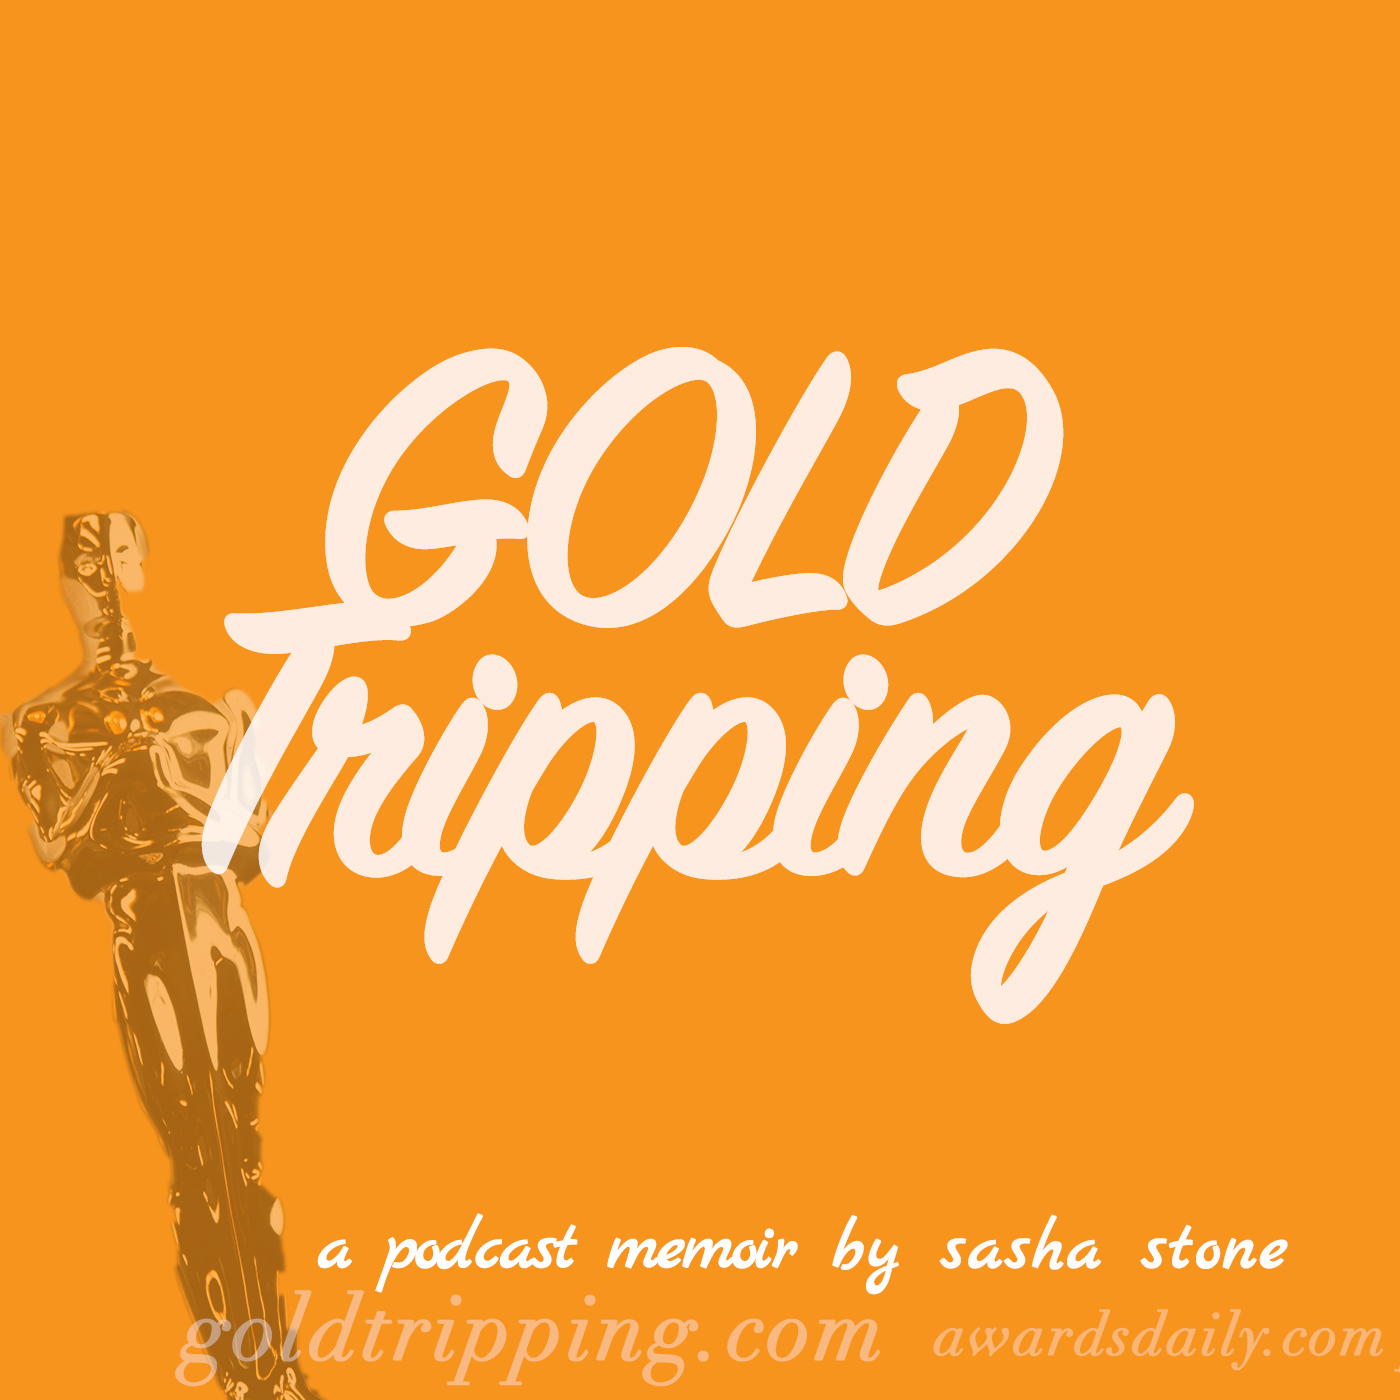 Gold Tripping